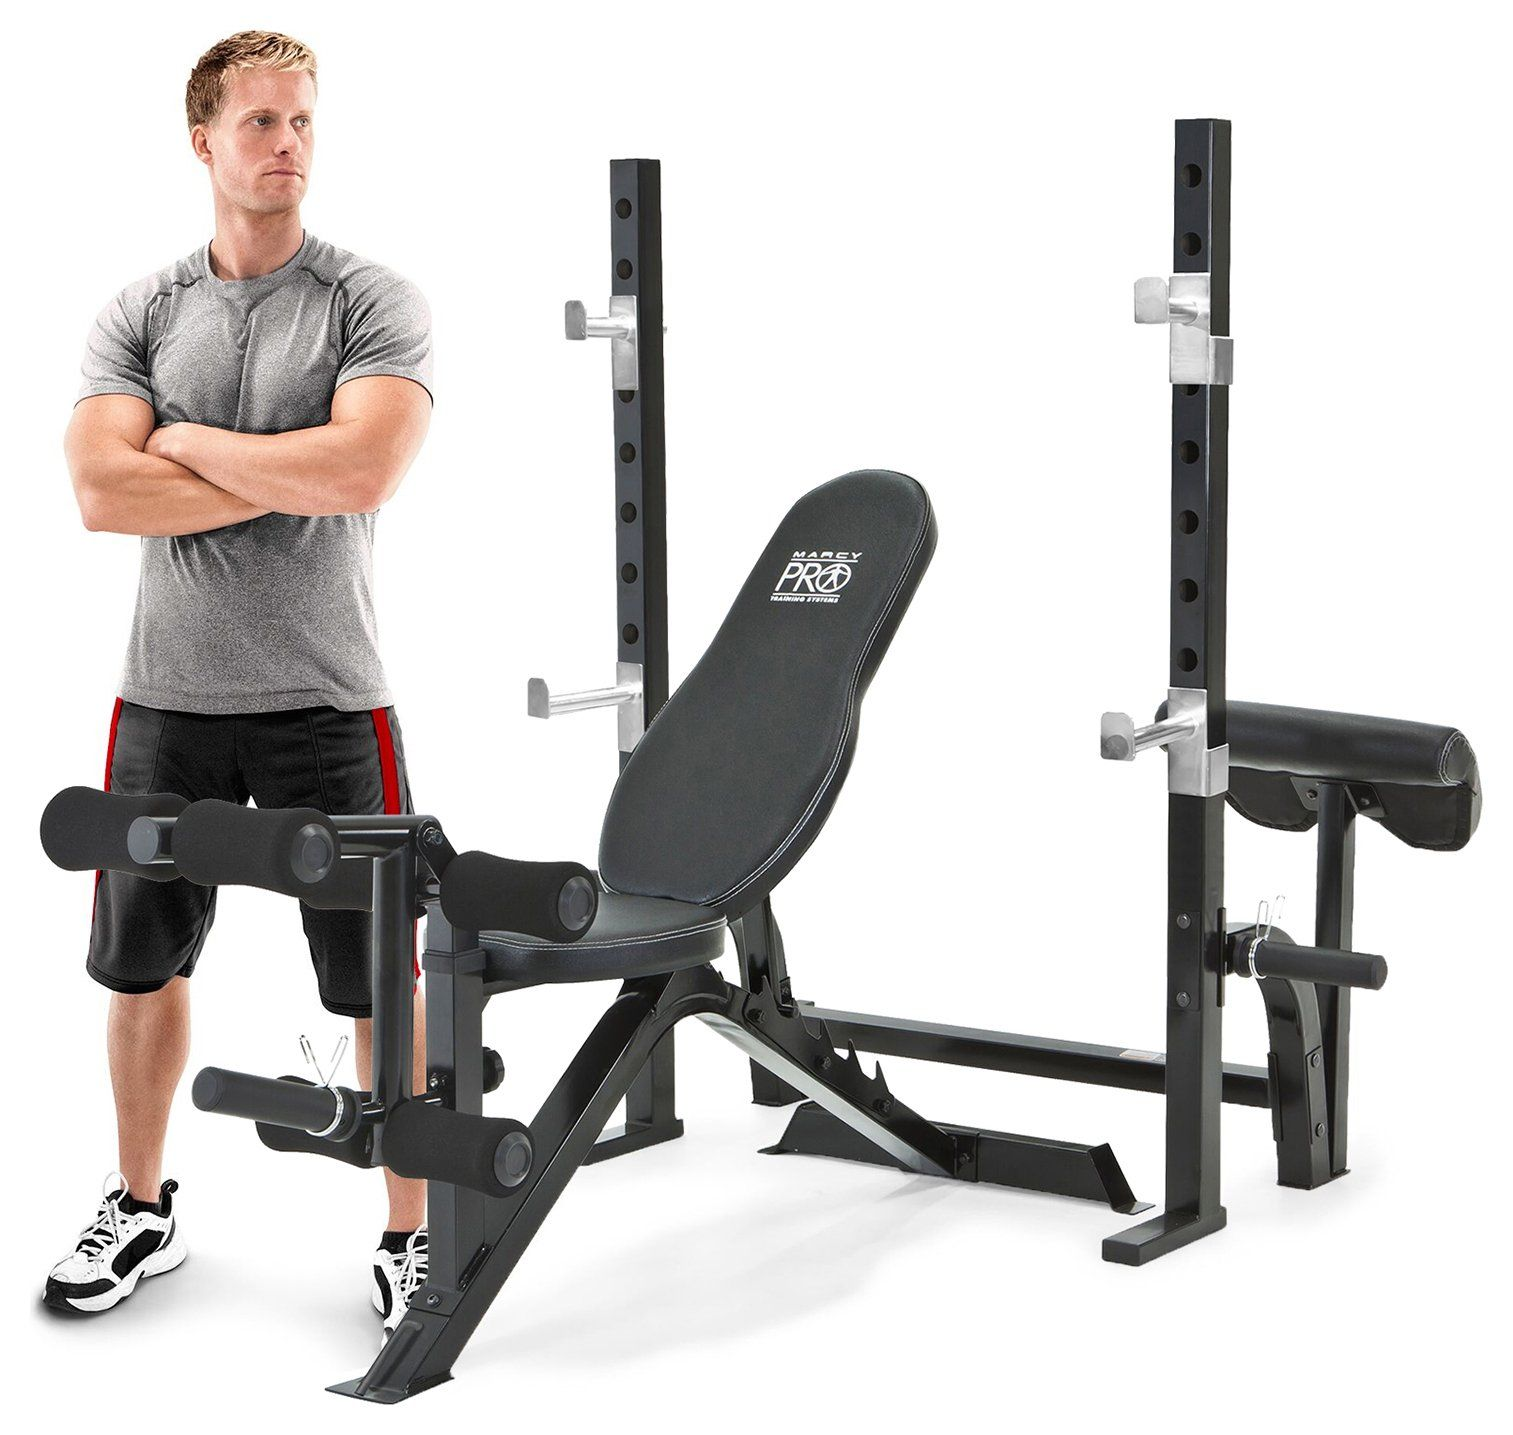 Marcy Pro Olympic Bench With Squat Rack Squat Rack Weight Benches Olympic Weights